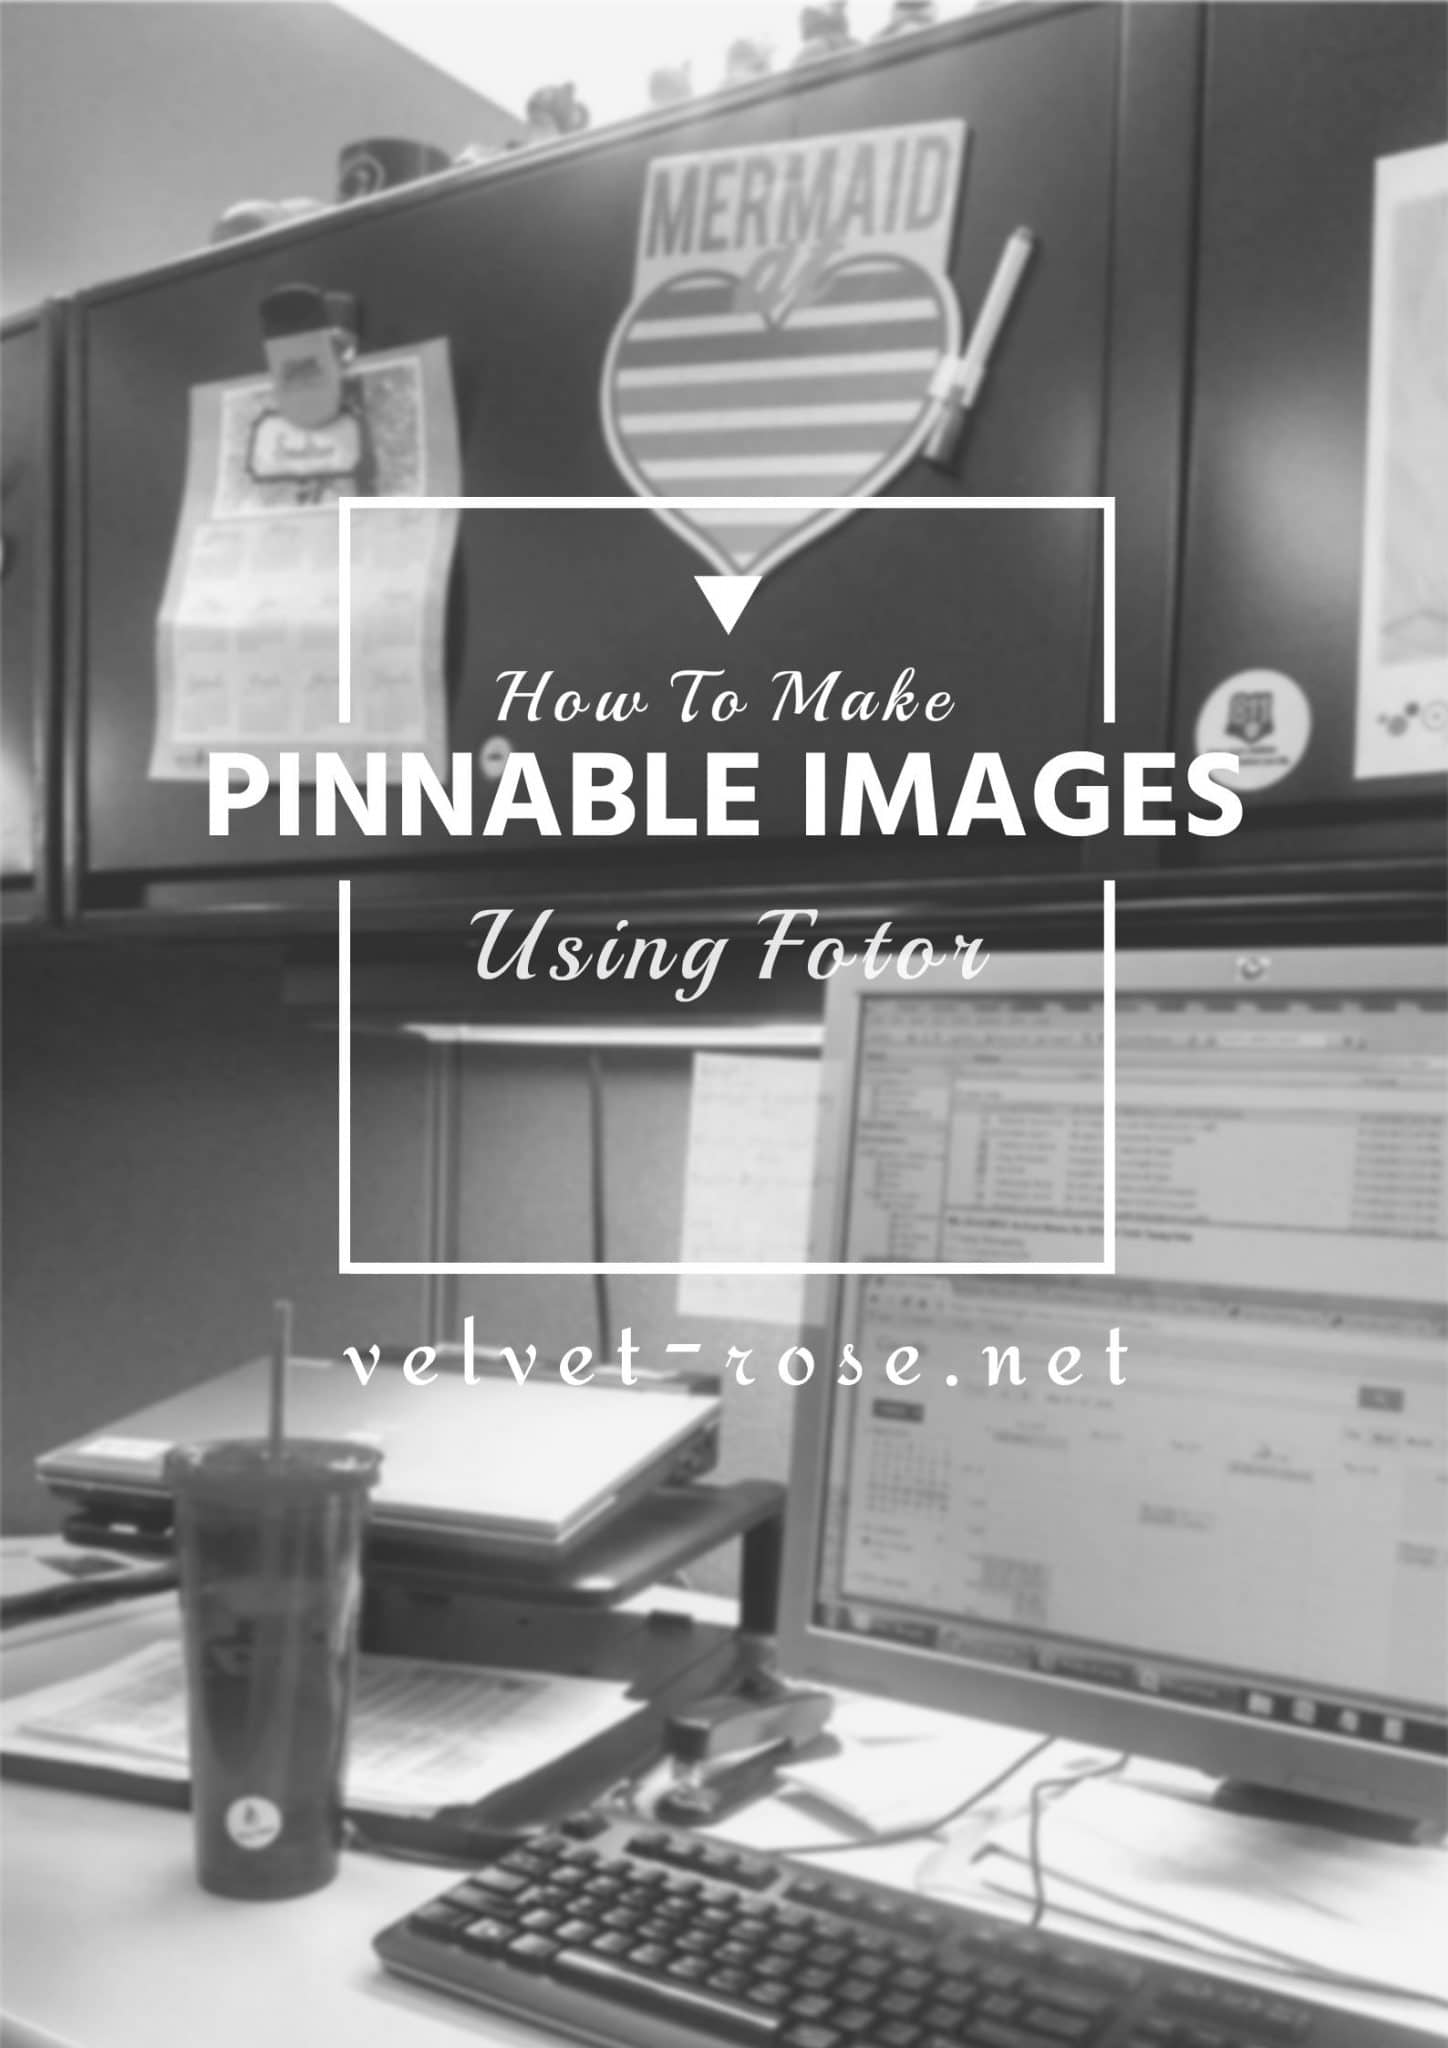 How to create a Pinnable image using Fotor